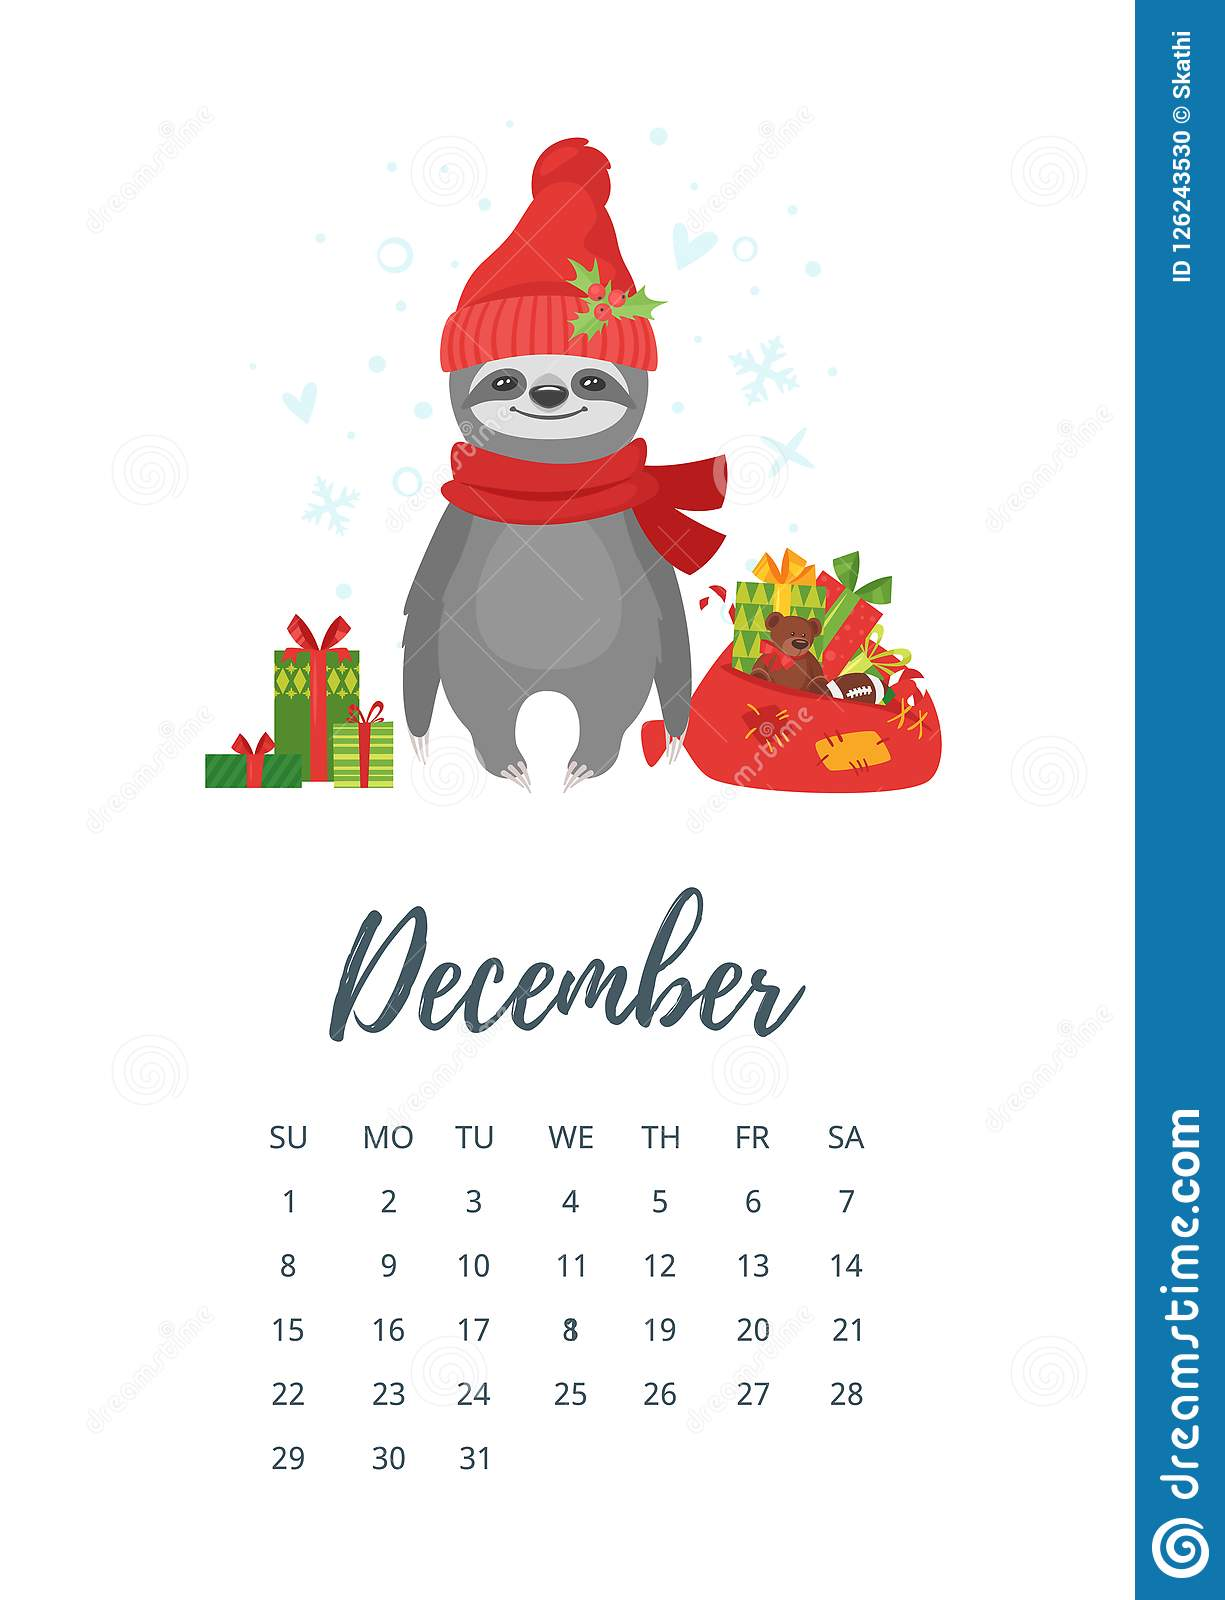 December Calendar 2019 Santa December 2019 Year Calendar Page Stock Vector   Illustration of